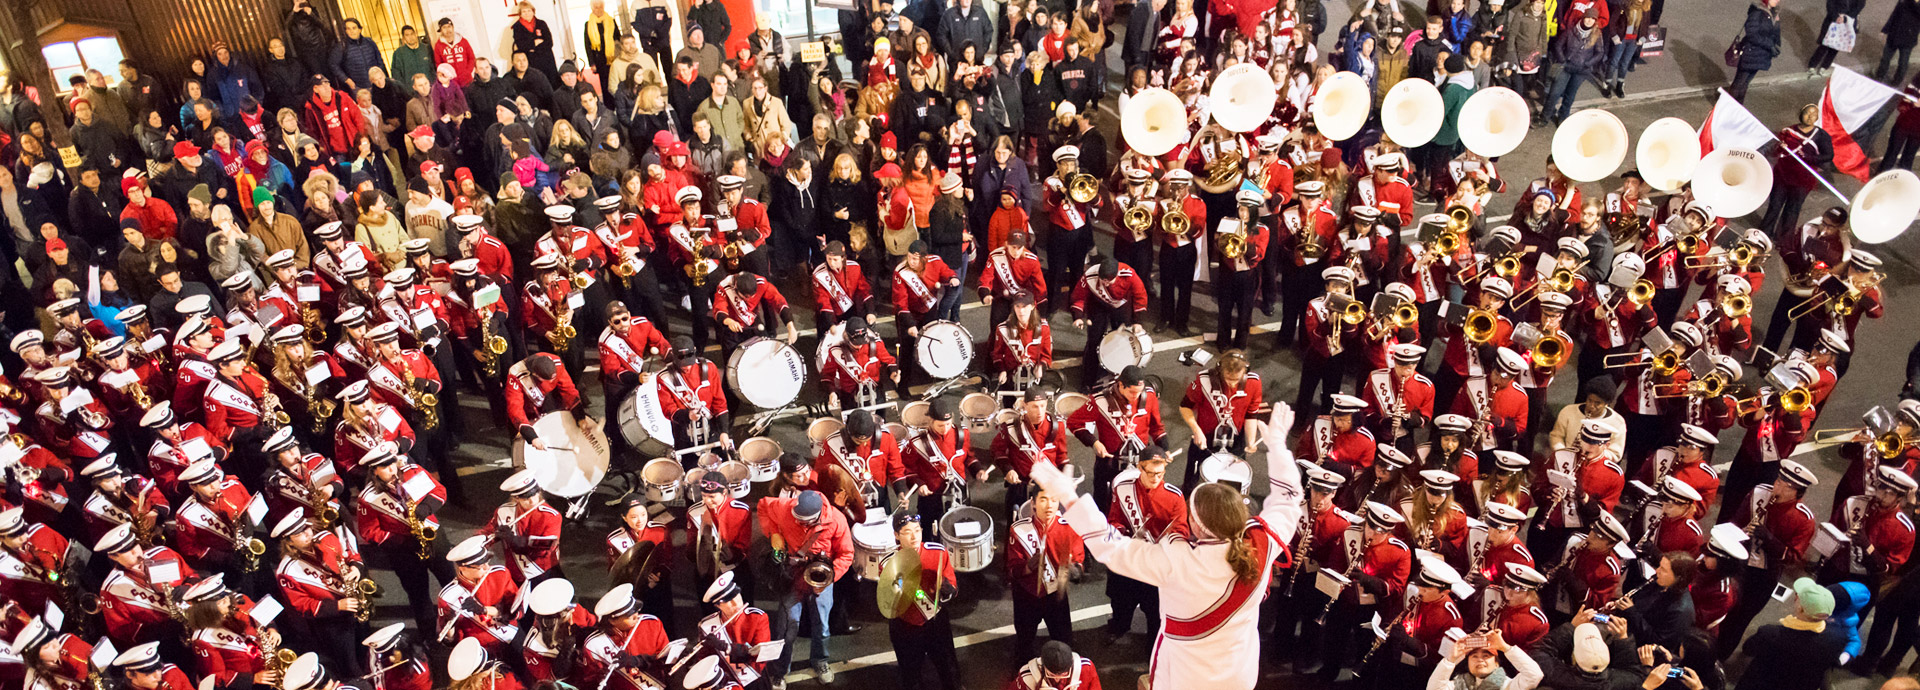 The Cornell University Marching Band